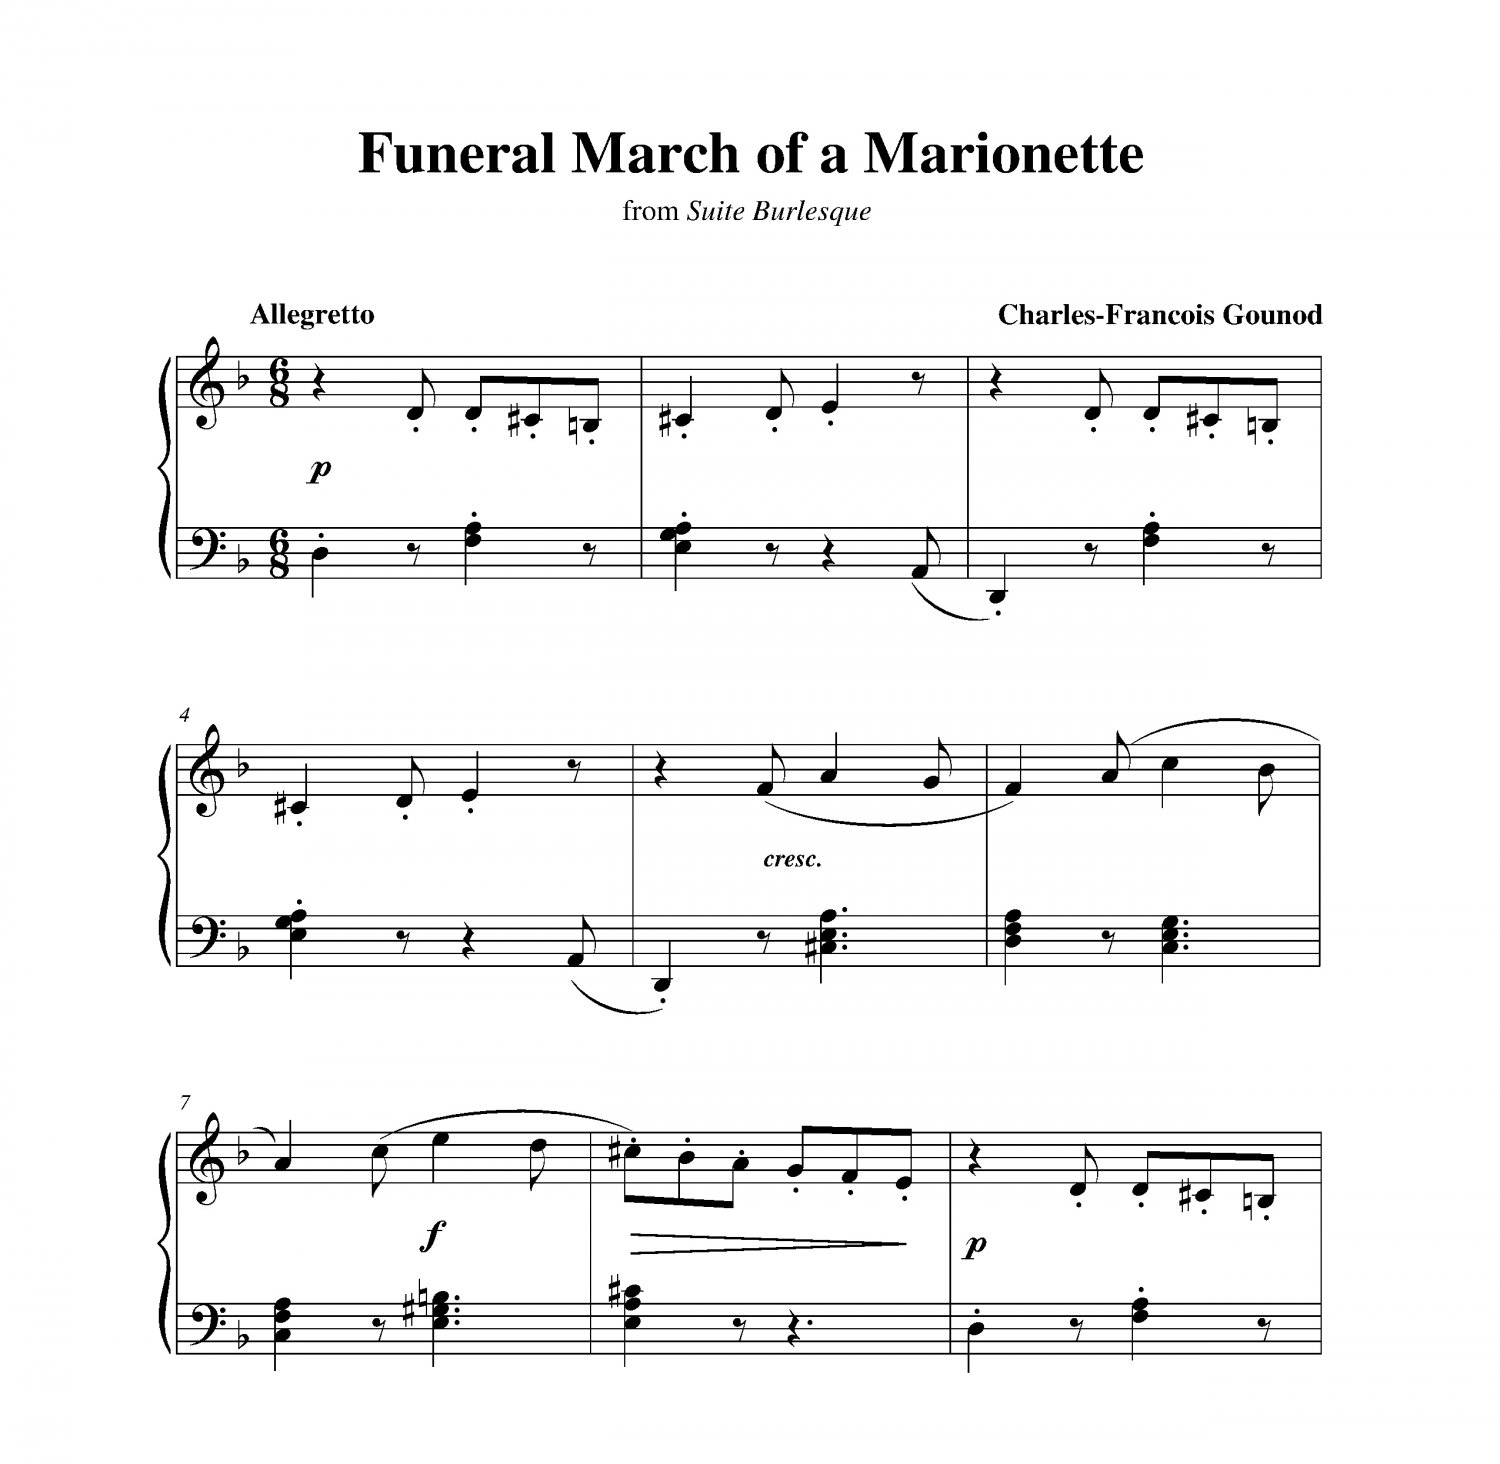 Gonoud - Funeral March of a Marionette